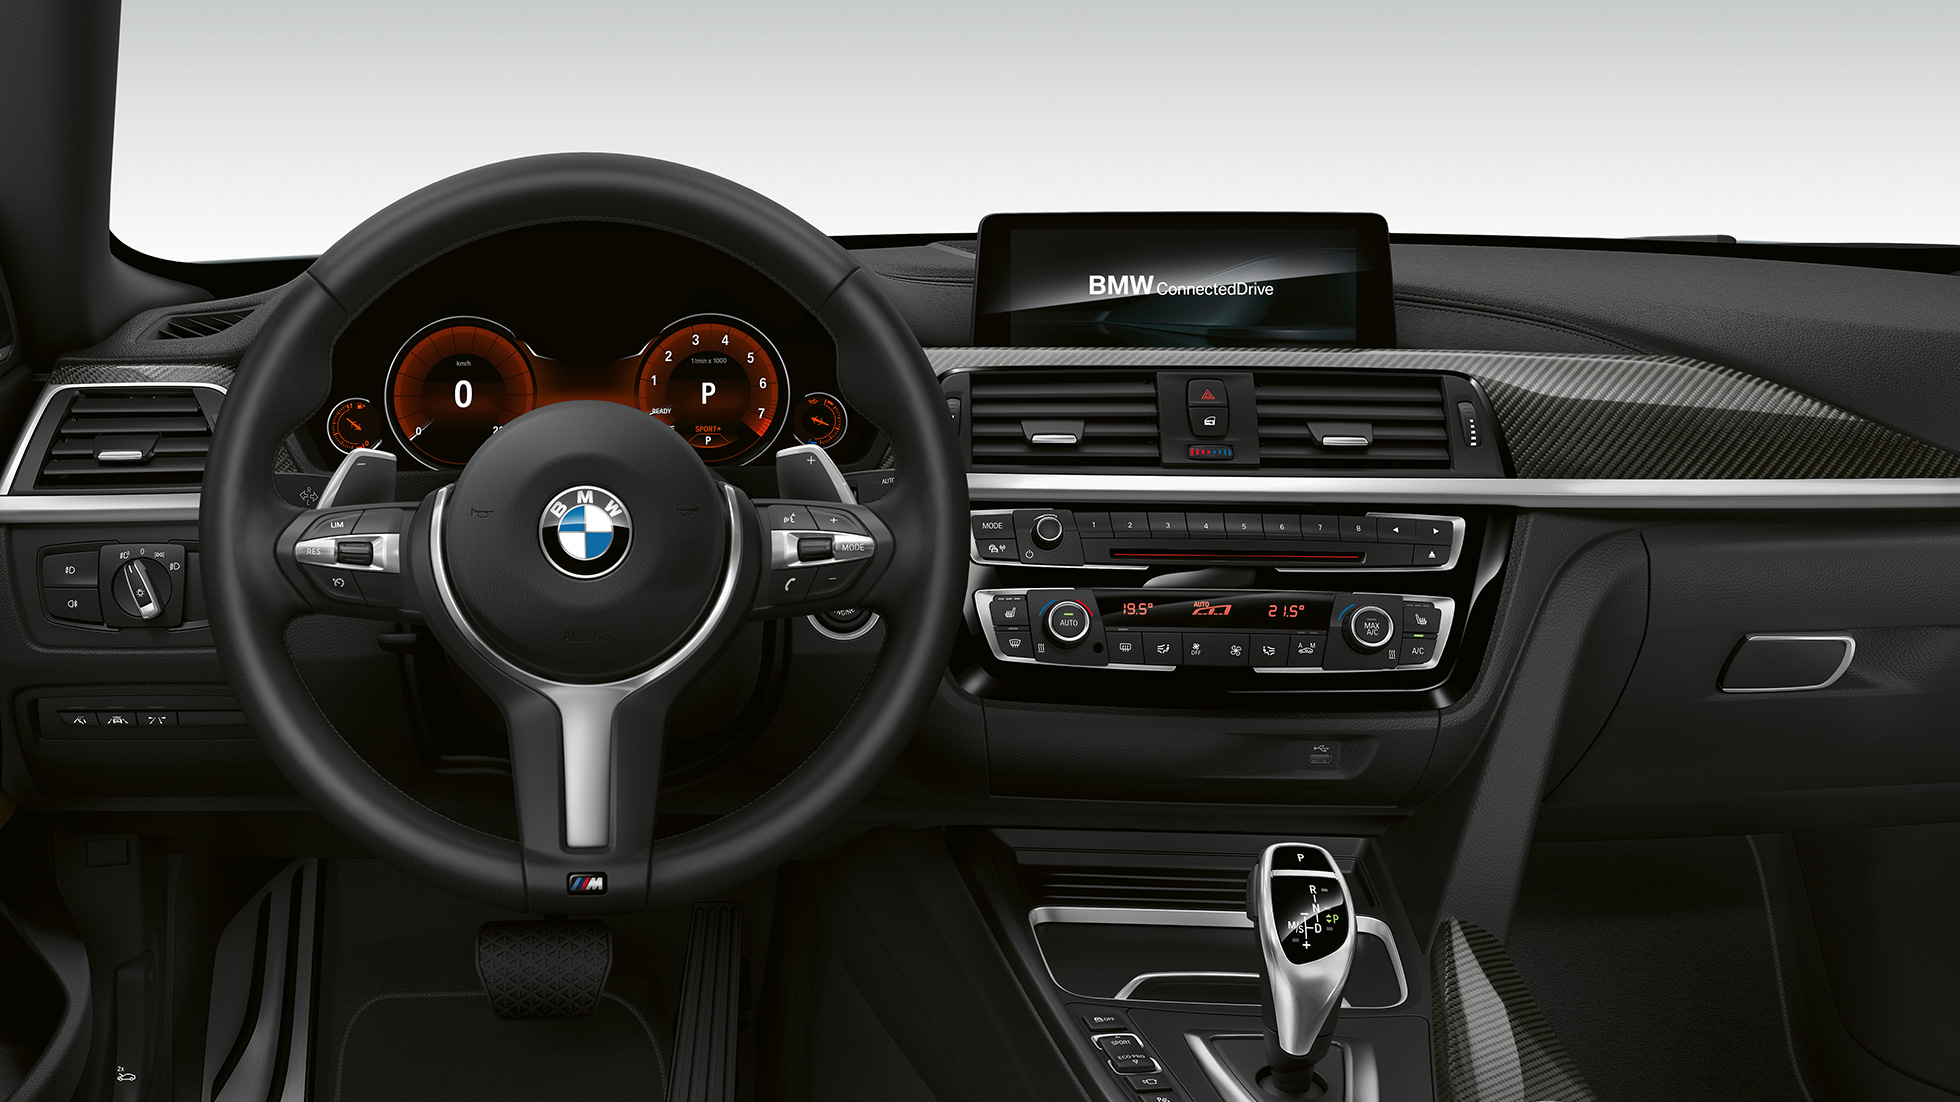 BMW 4 Series Gran Coupé,M Sport 駕駛艙